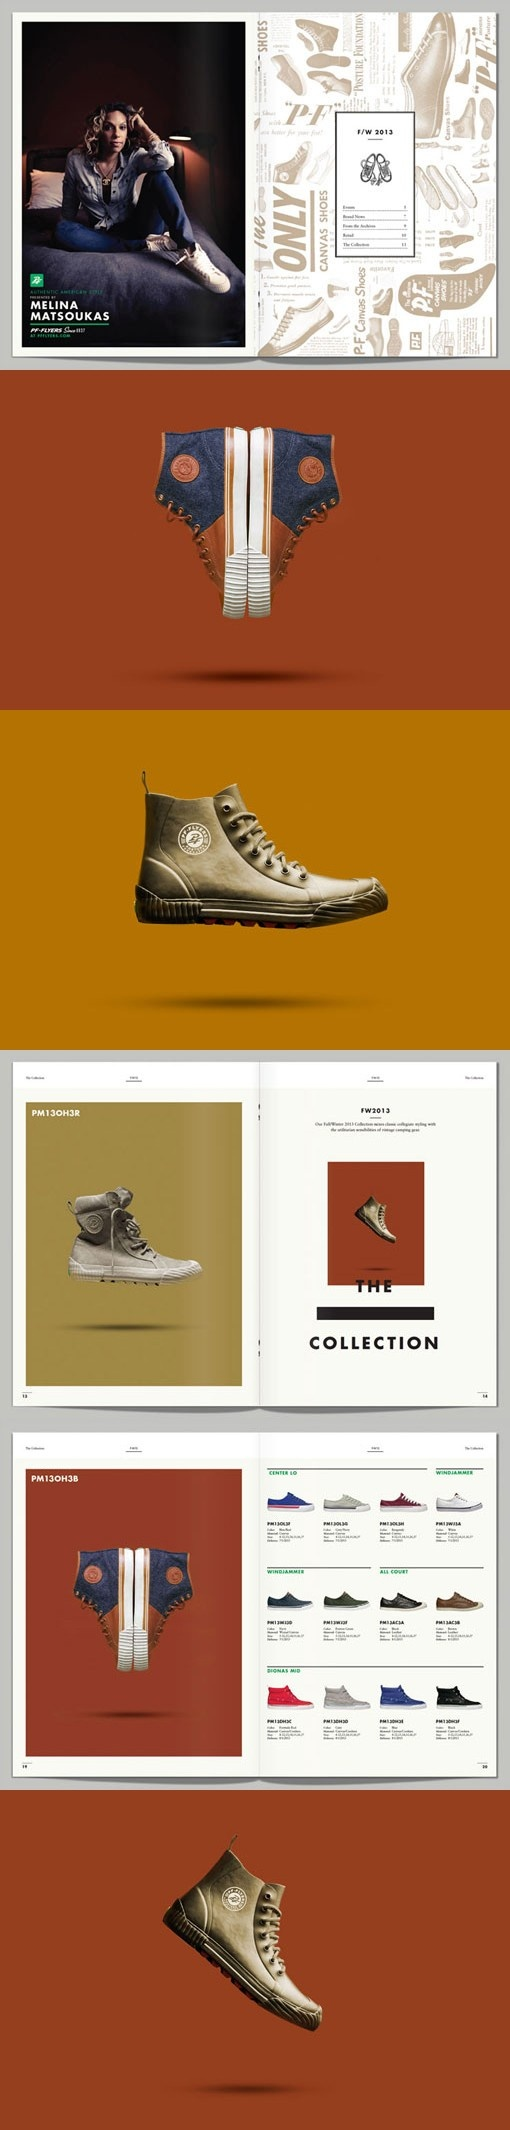 Adam & Co — PF Flyers FY13. #shoes #design #layout